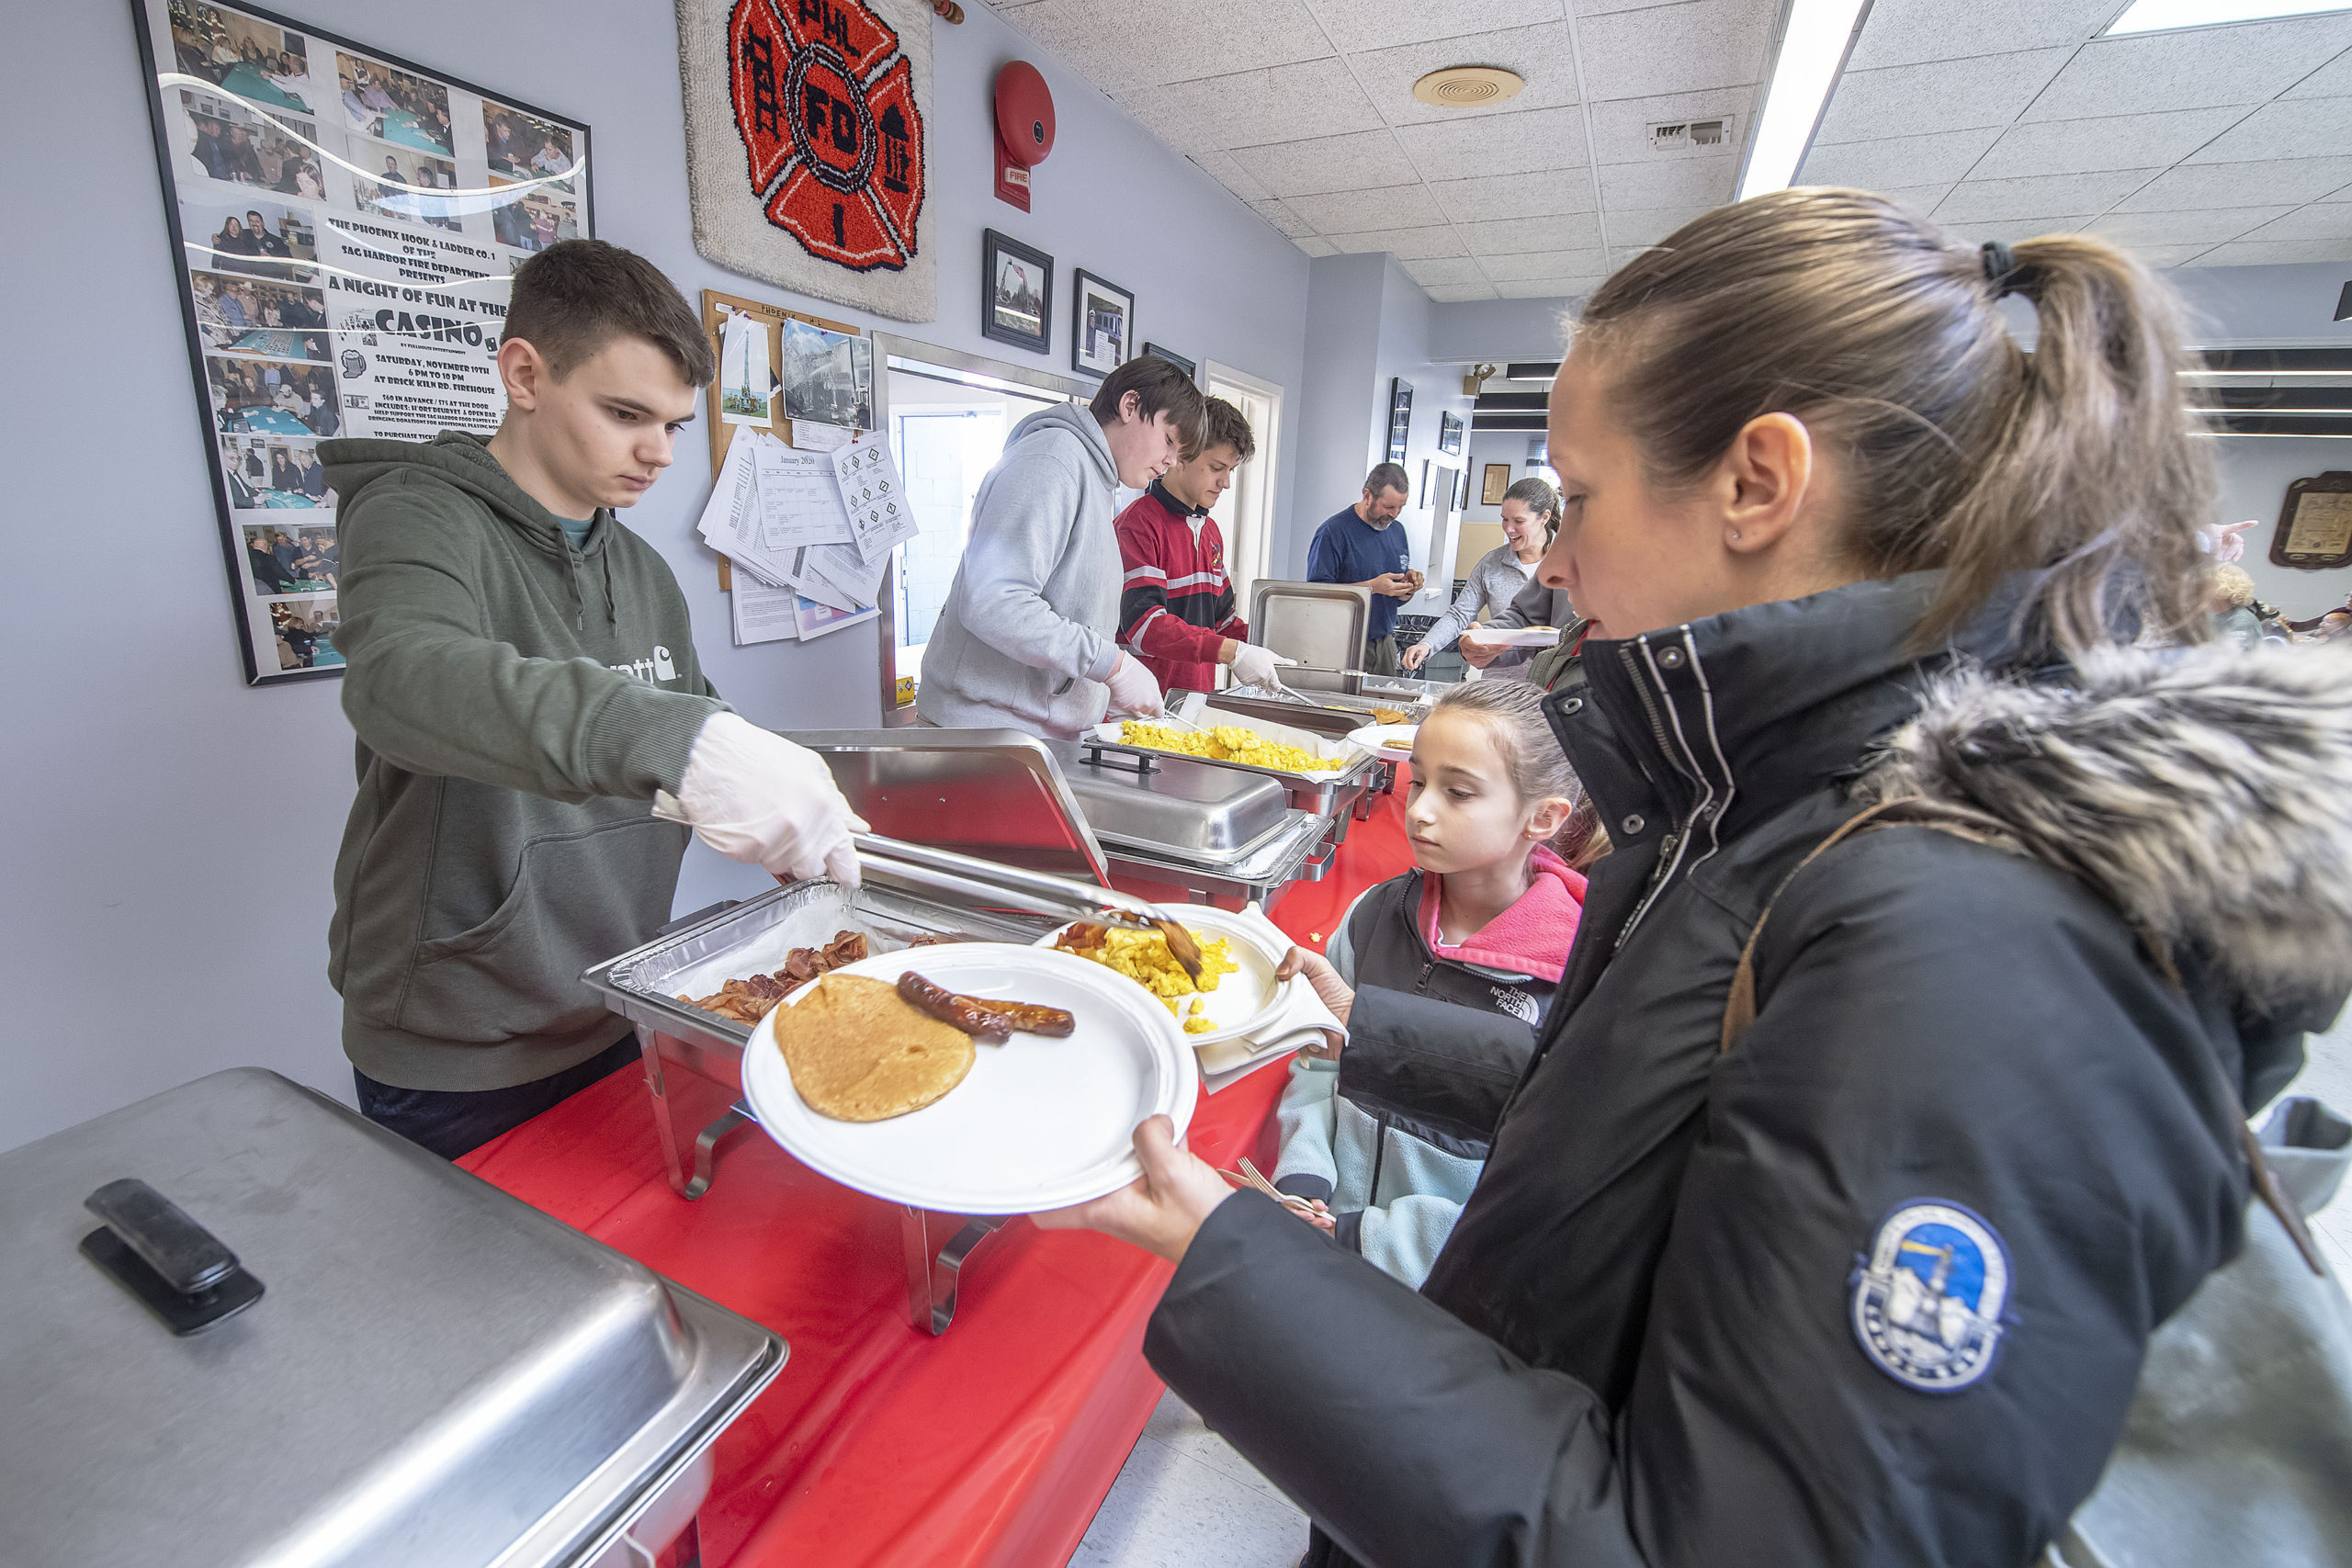 J.J. Murray serves up hash browns as his pals Colby Wilson and Truman Yardley handle the pancakes, eggs, sausage and bacon duities during the Pancake Breakfast held to benefit the Pierson Robotics Team at the Sag Harbor Fire Department firehouse on Sunday.   MICHAEL HELLER